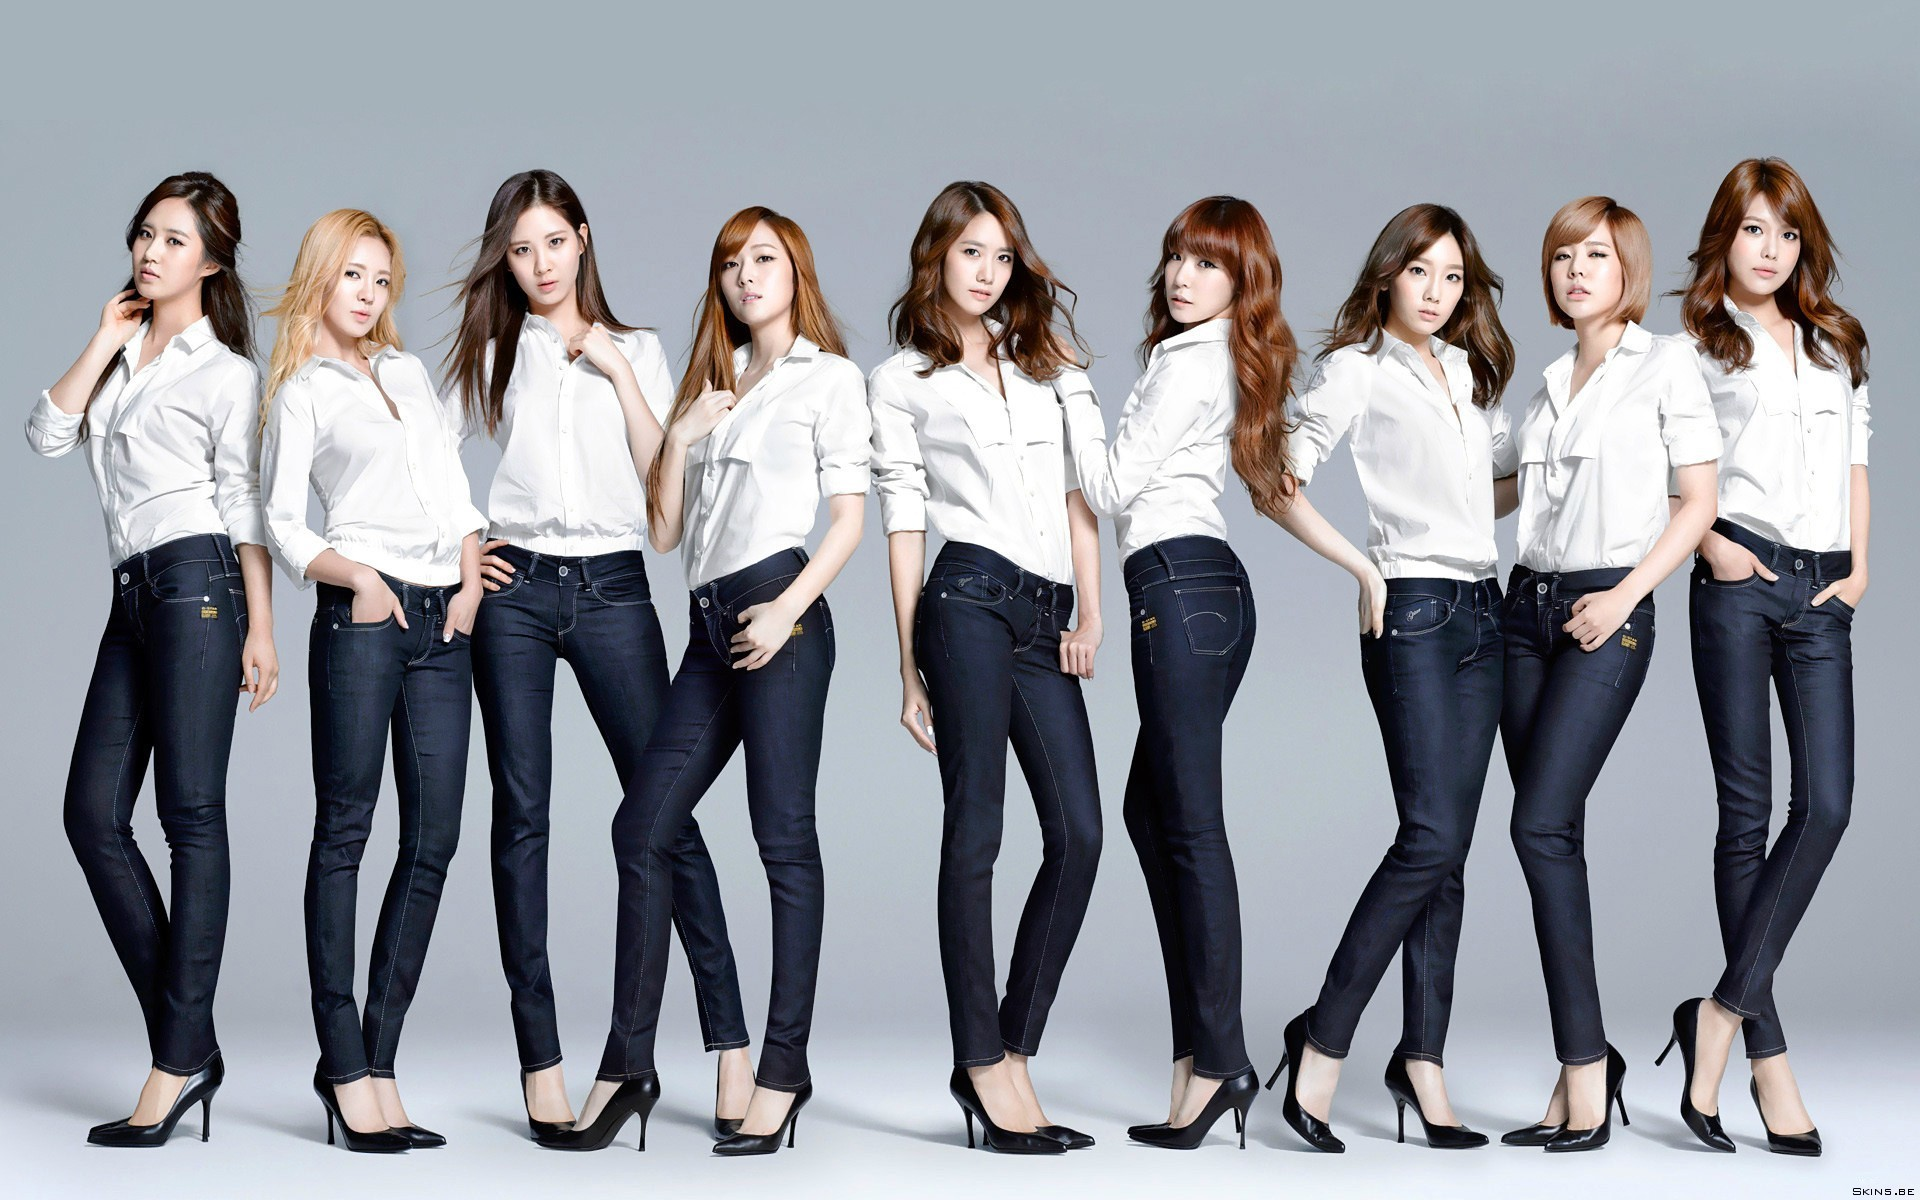 Kara Band wallpaper - 886252